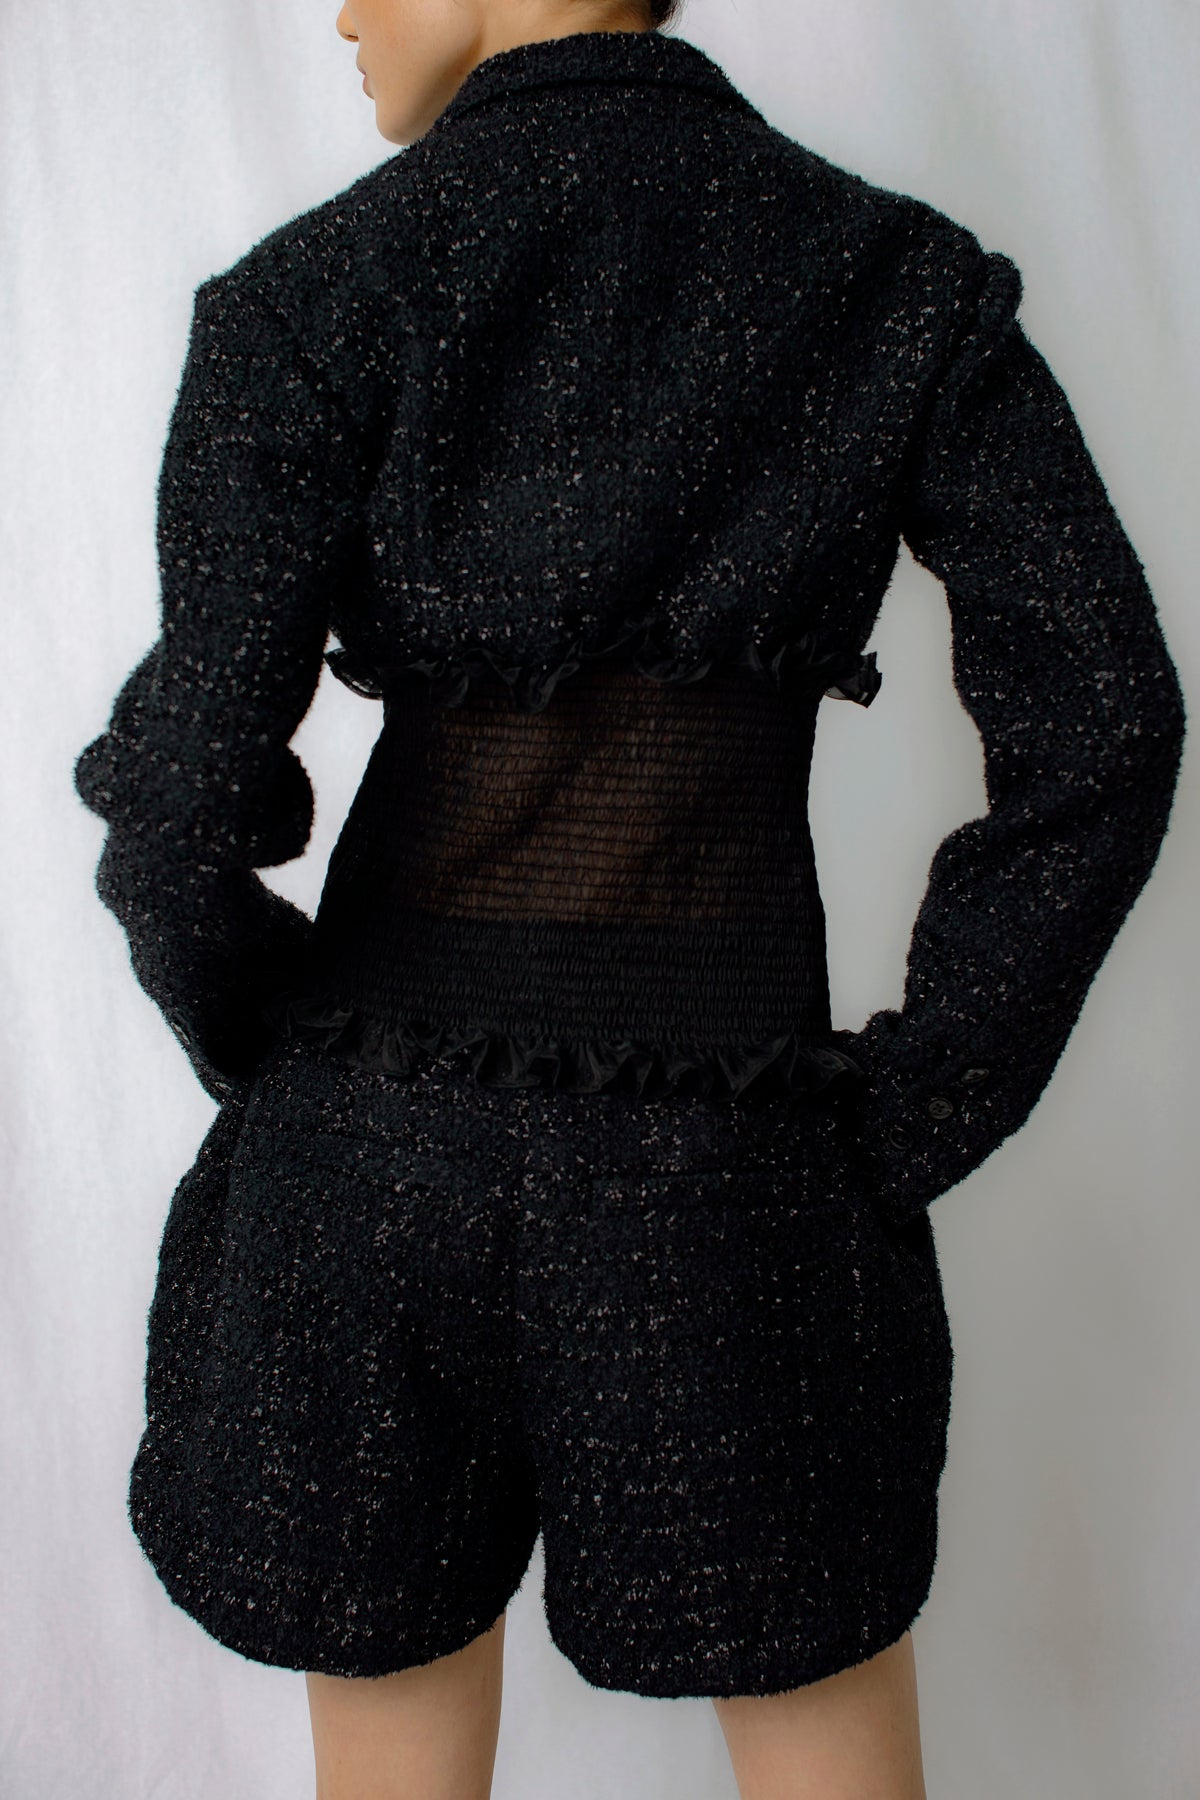 Magnolia Tweed Jacket in Black